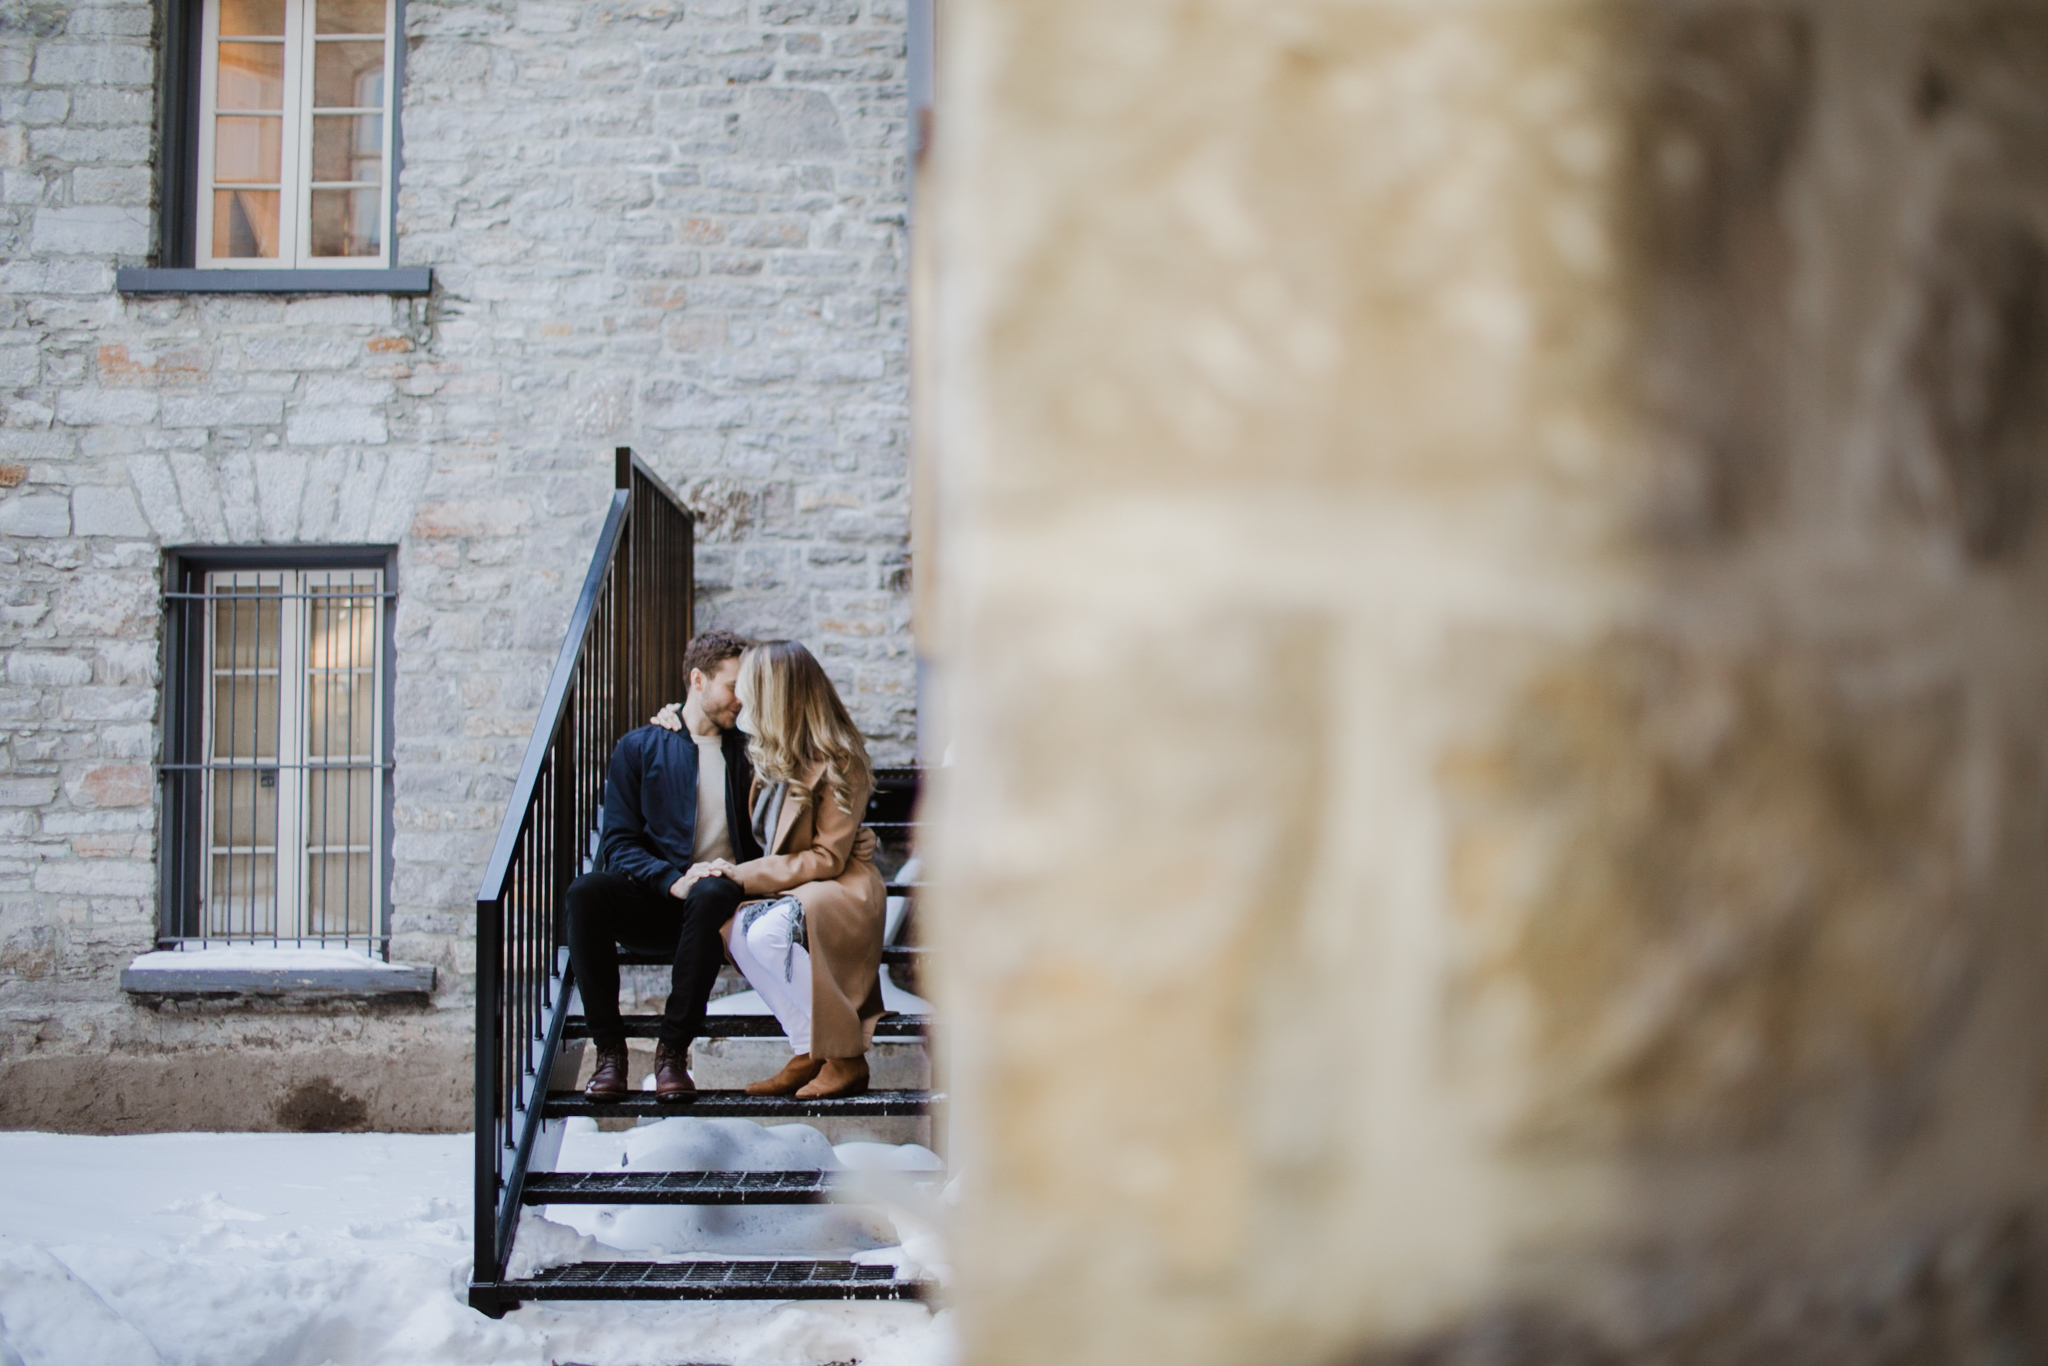 Ottawa Courtyard Restaurant Engagement